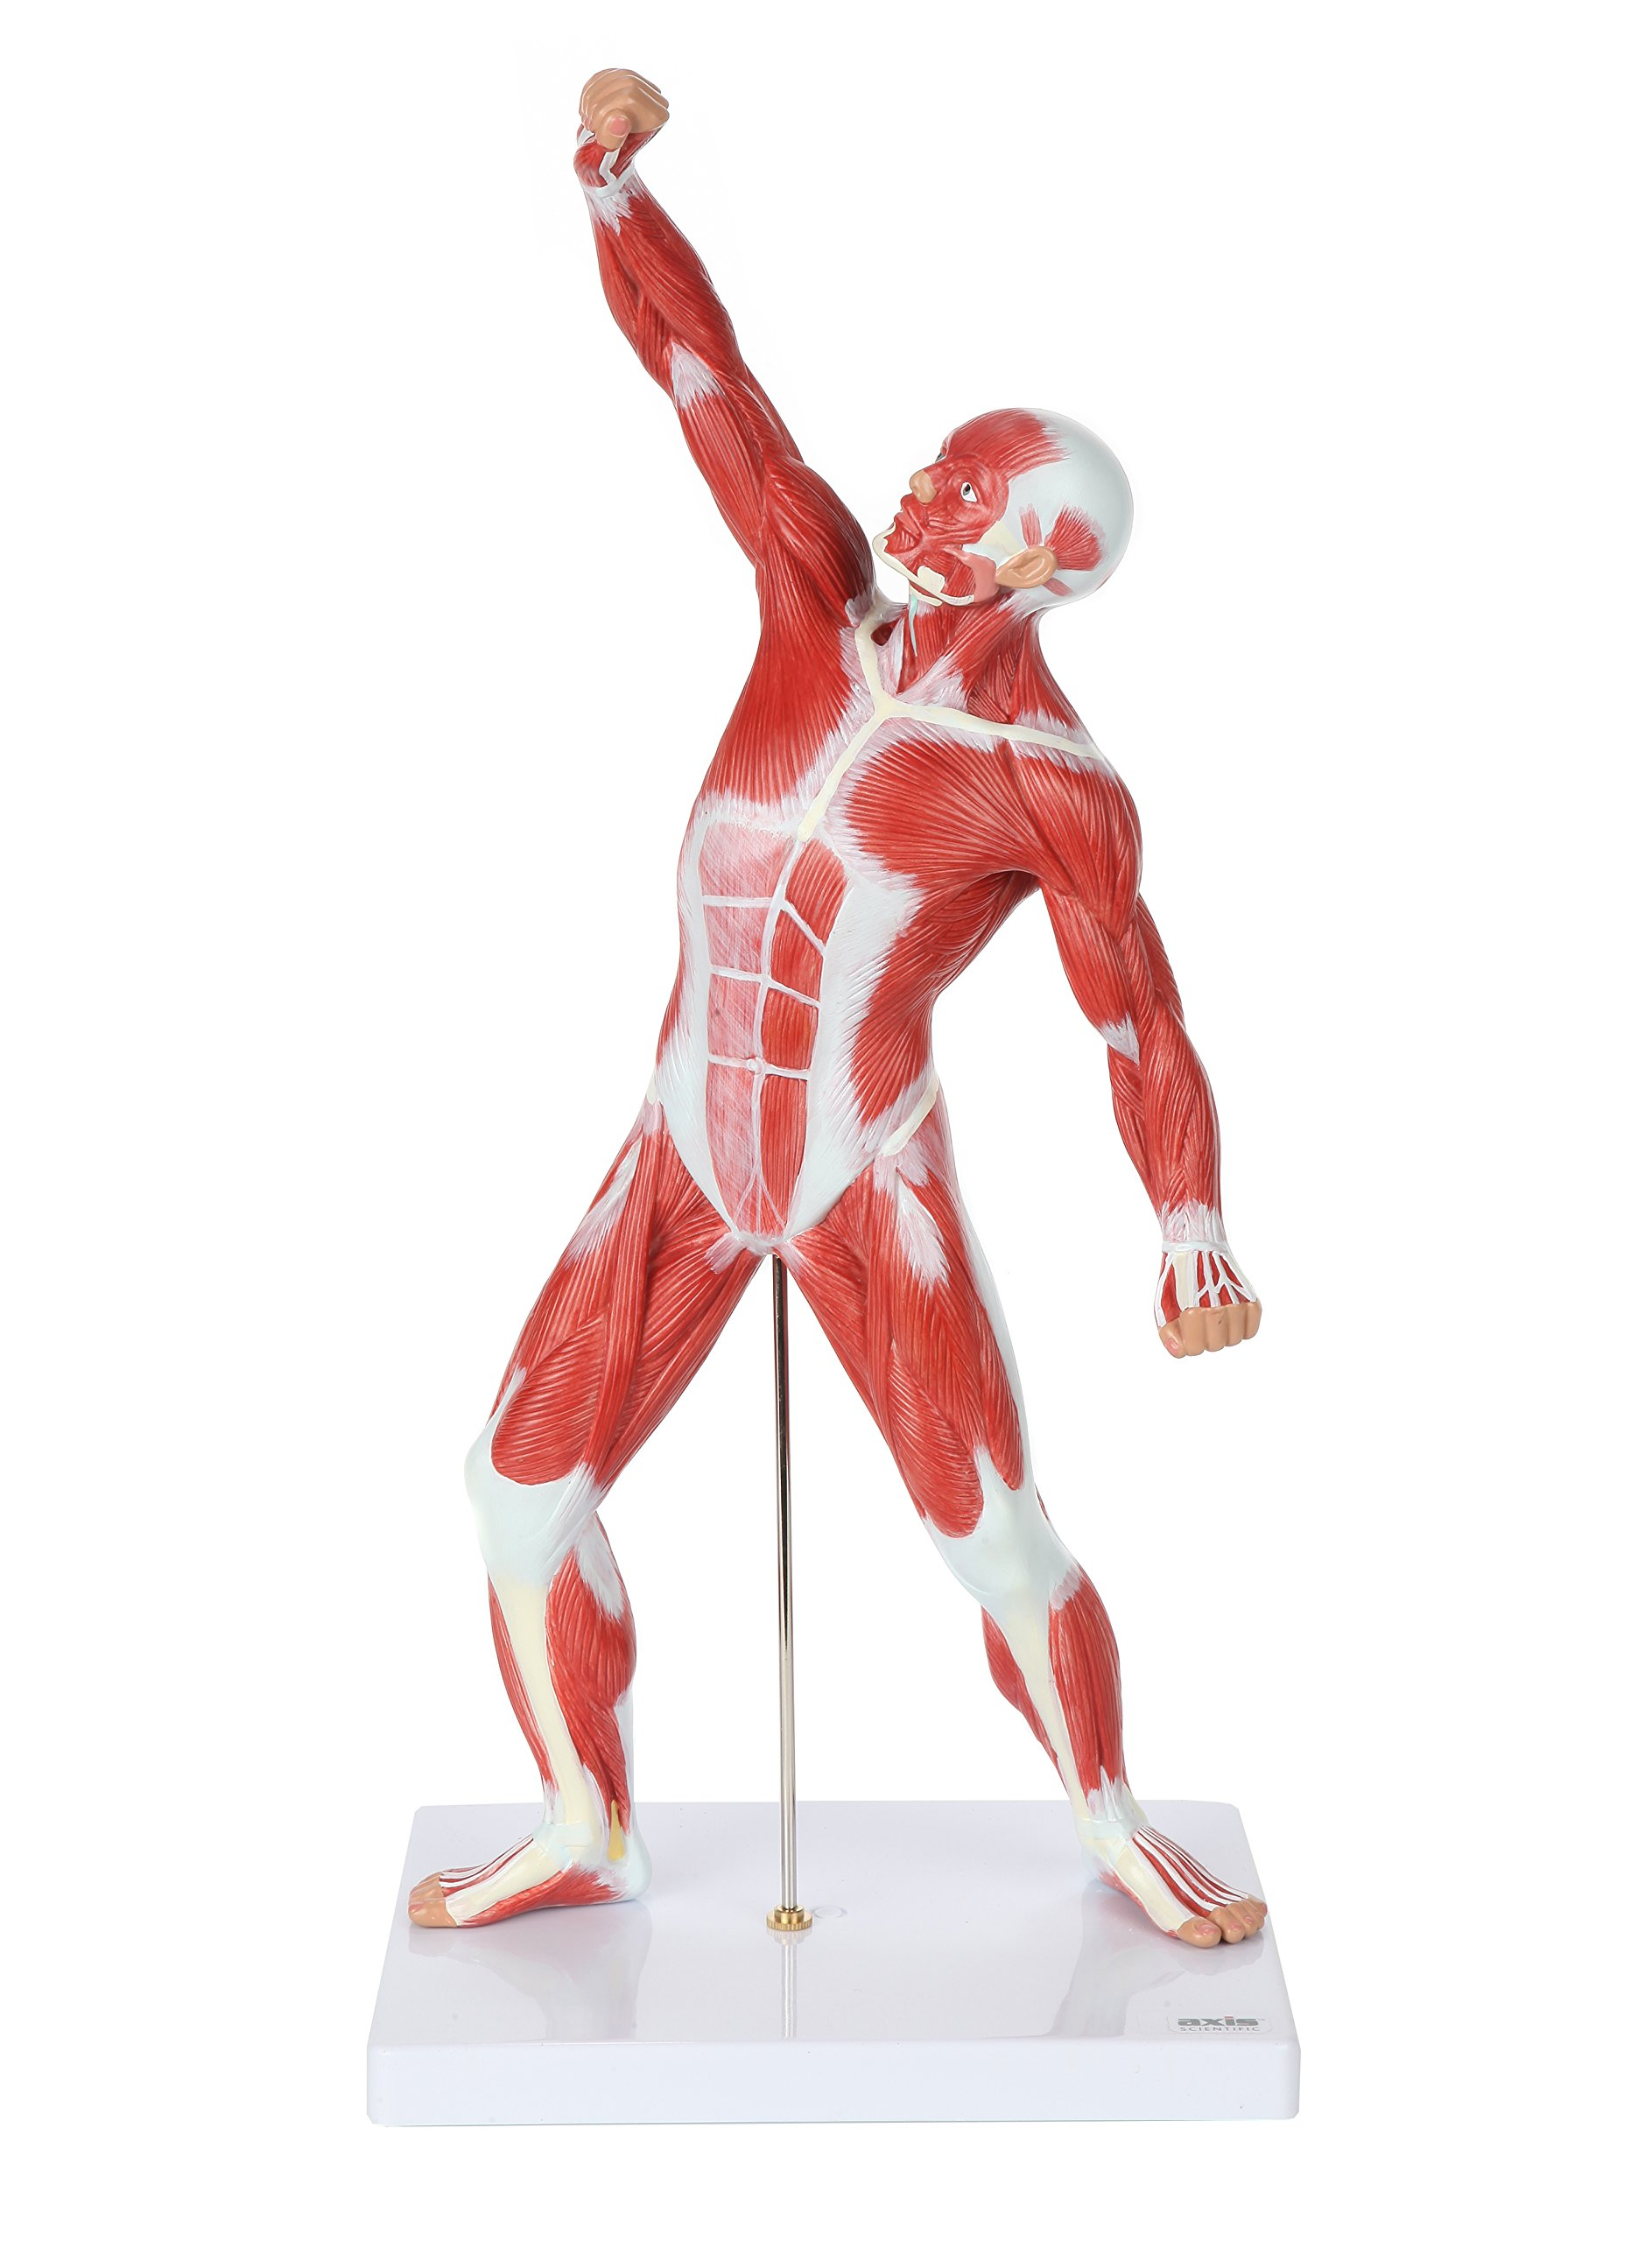 Axis Scientific Miniature Human Muscule Figure   20 Inch Mini Muscular System Model has Superficial Muscle Anatomy and Structure of The Body   Includes Detailed Product Manual   3 Year Warranty